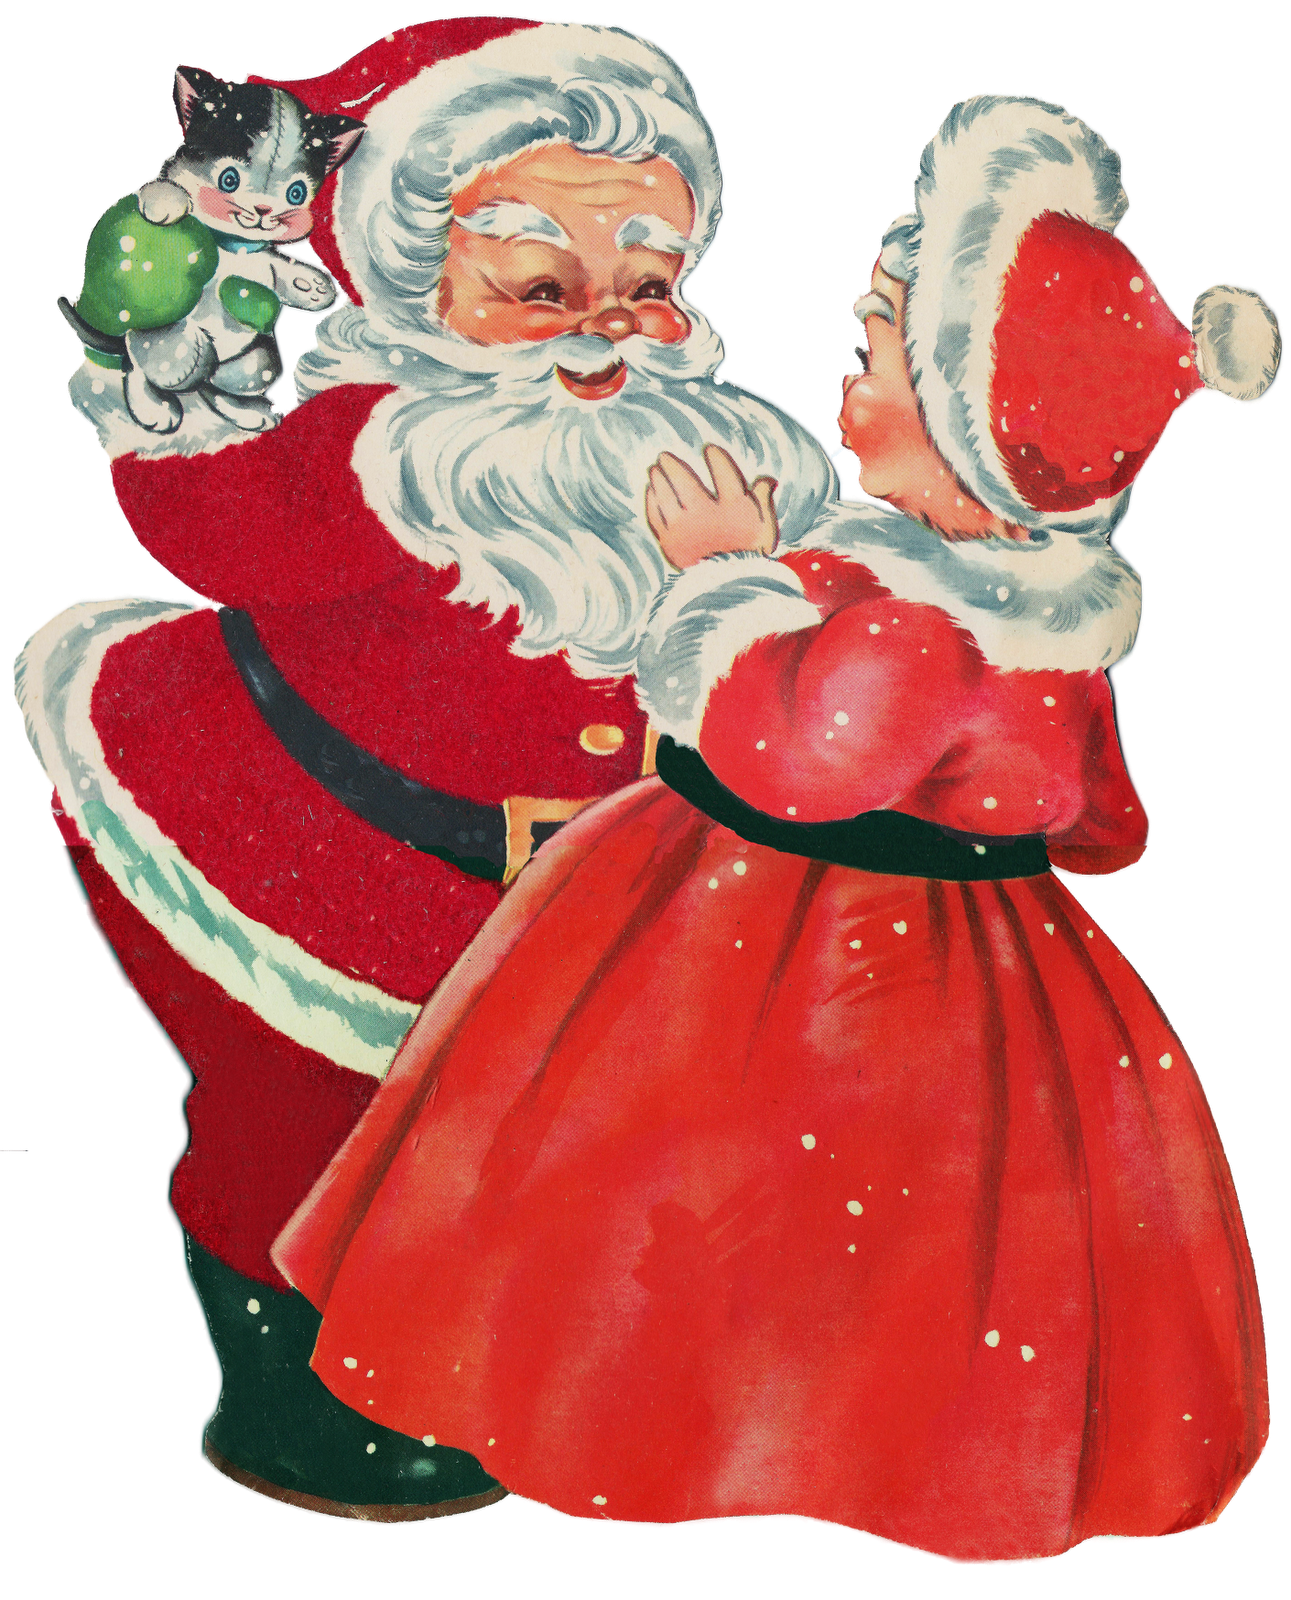 Mr and mrs claus ornaments - Santa Mrs Claus